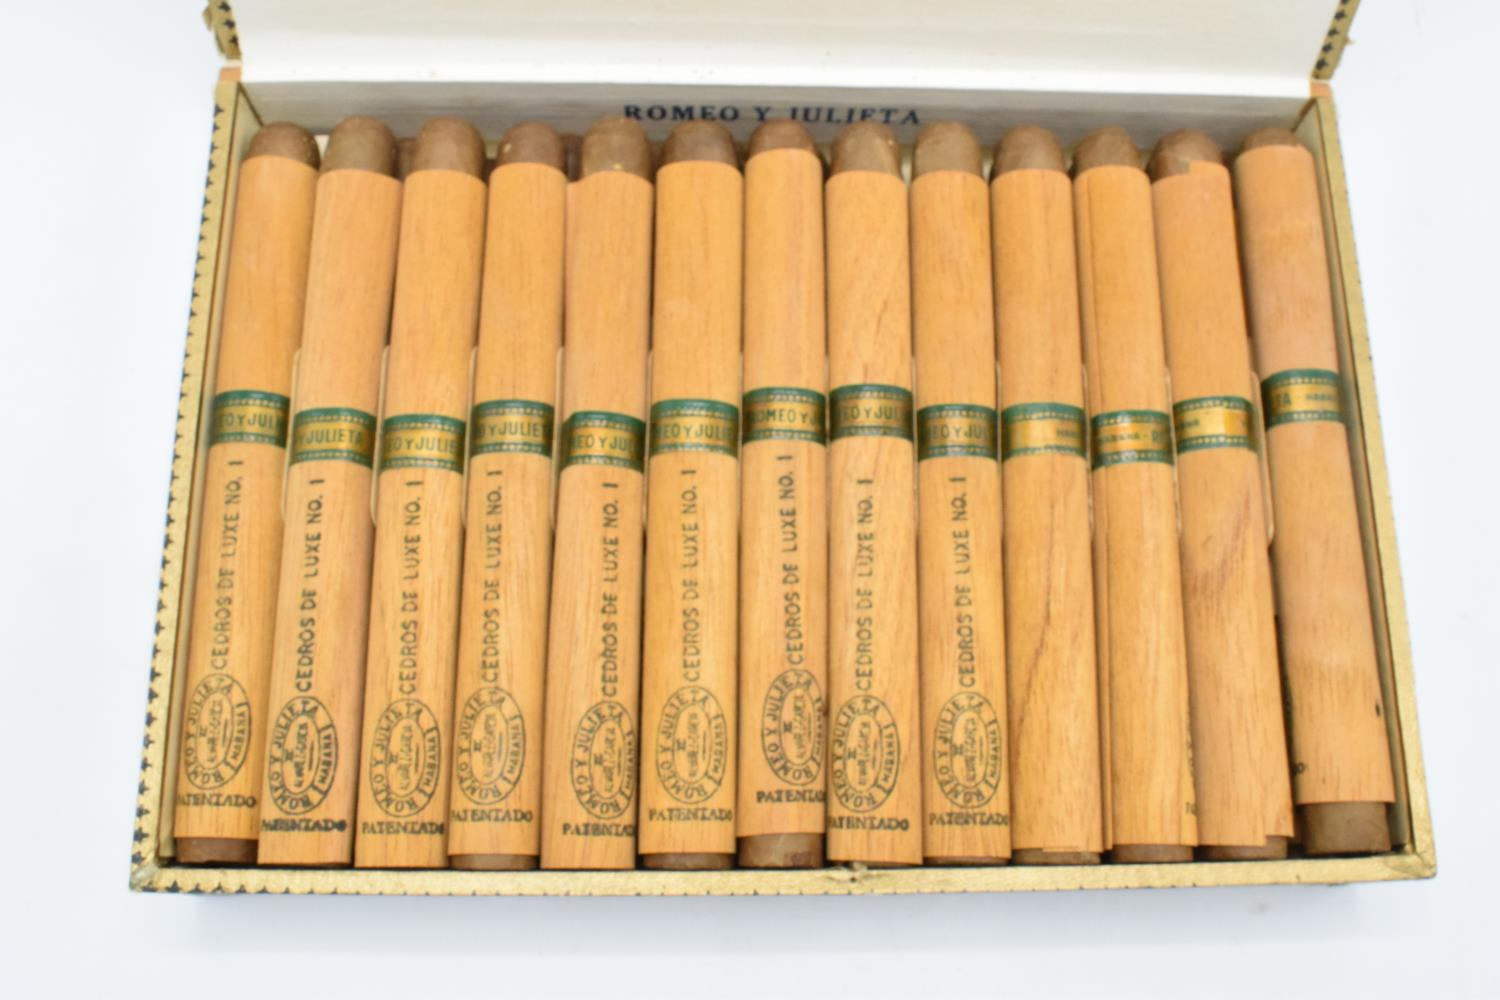 A cased set of 25 Romeo y Julieta Cedros De Luxe No.1 cigars made in Habana, Cuba. Appear to be in - Image 6 of 11